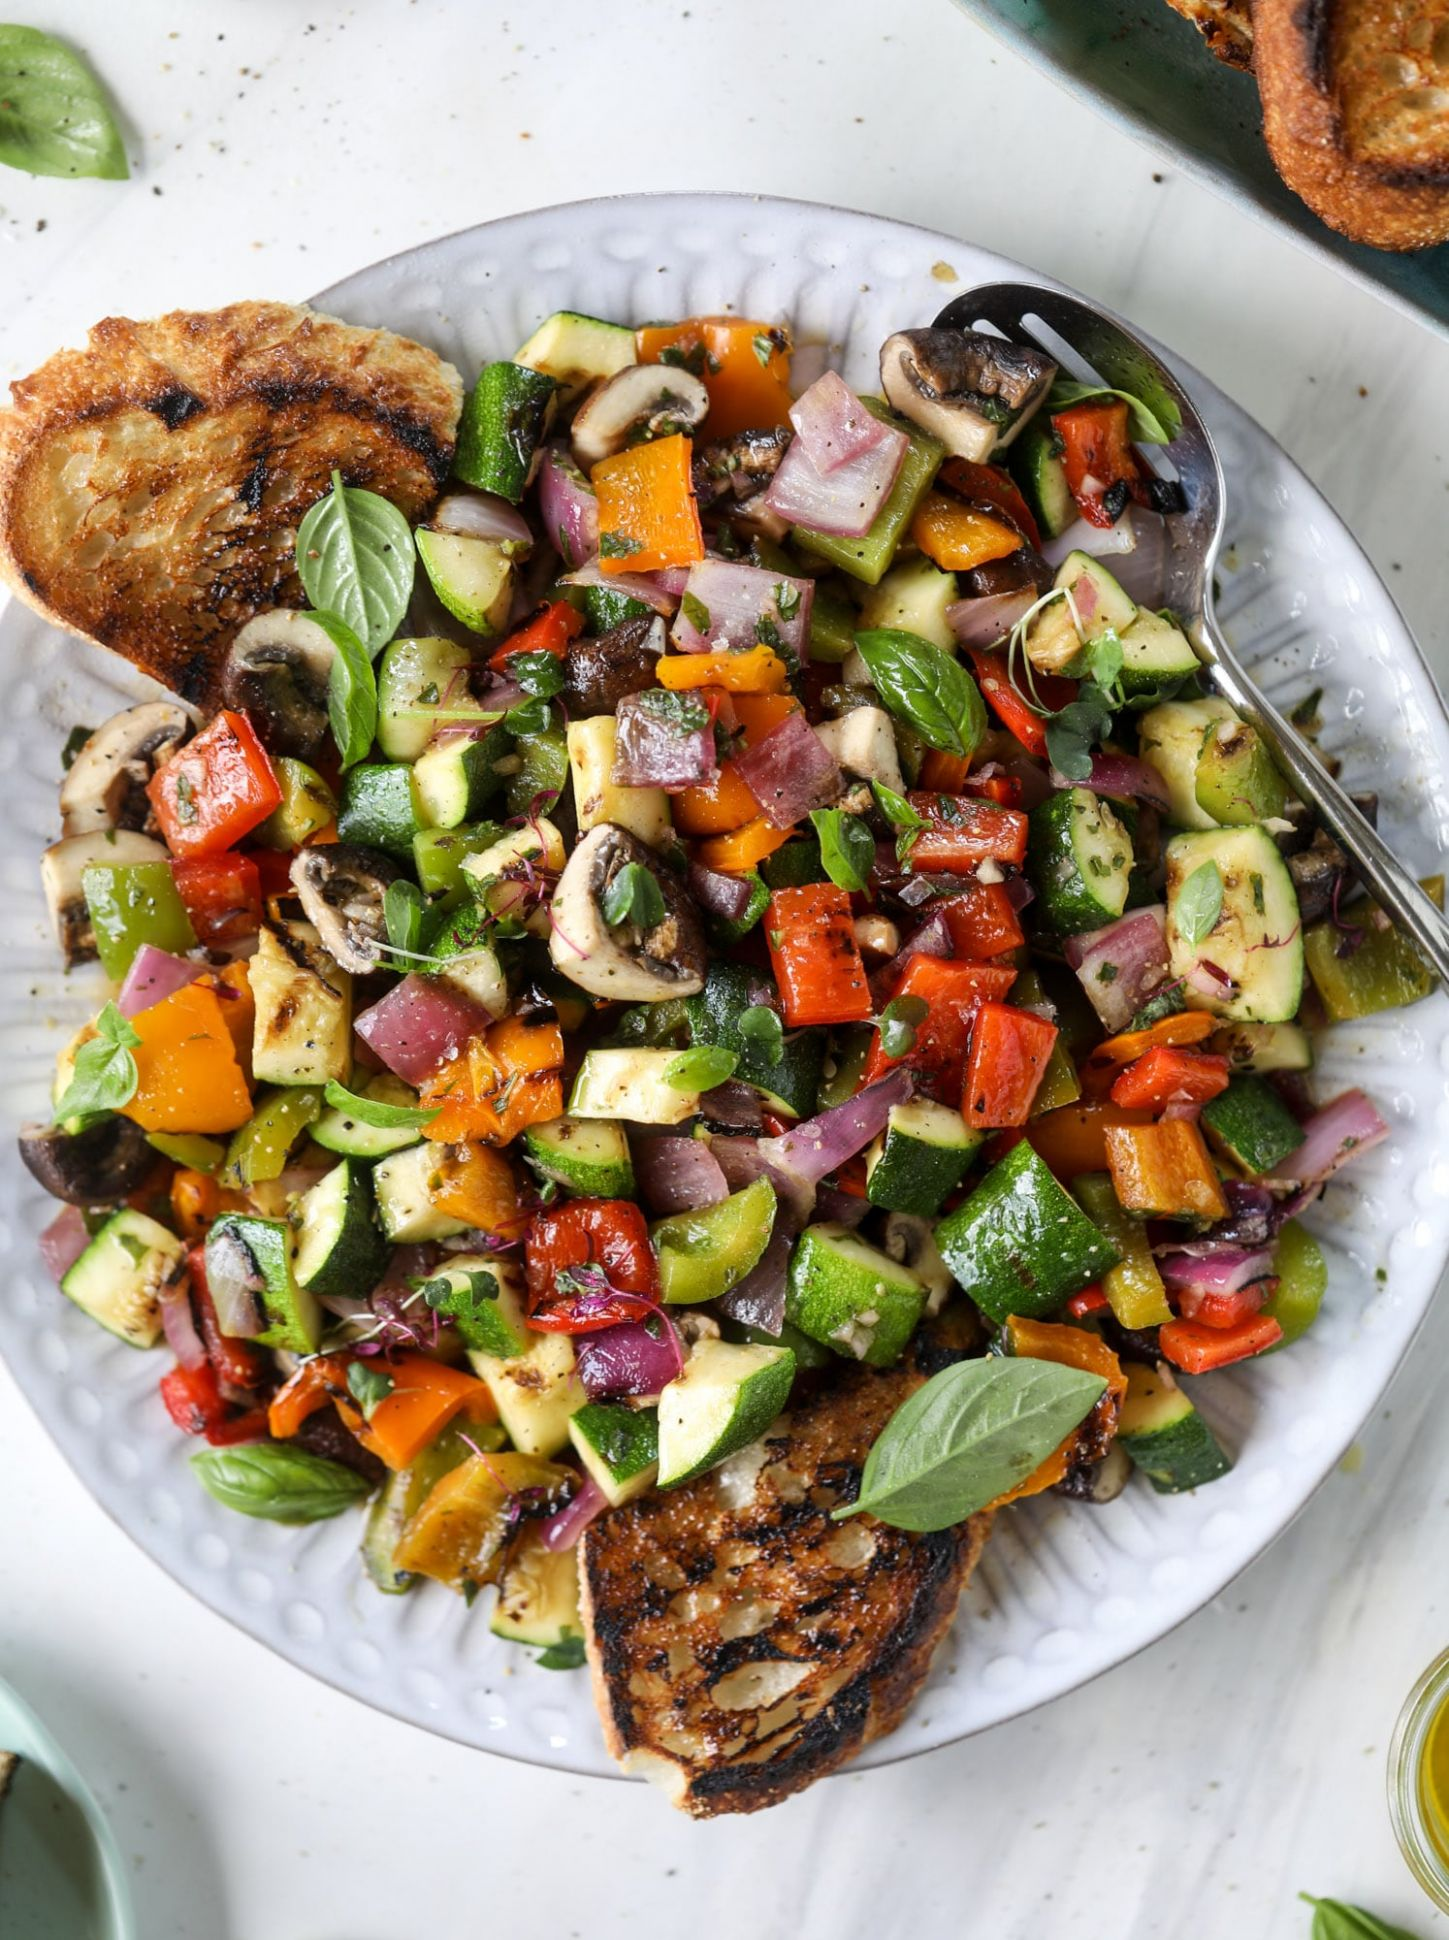 Grilled Chopped Veggies with Garlic Toast - Recipes Vegetables On The Grill